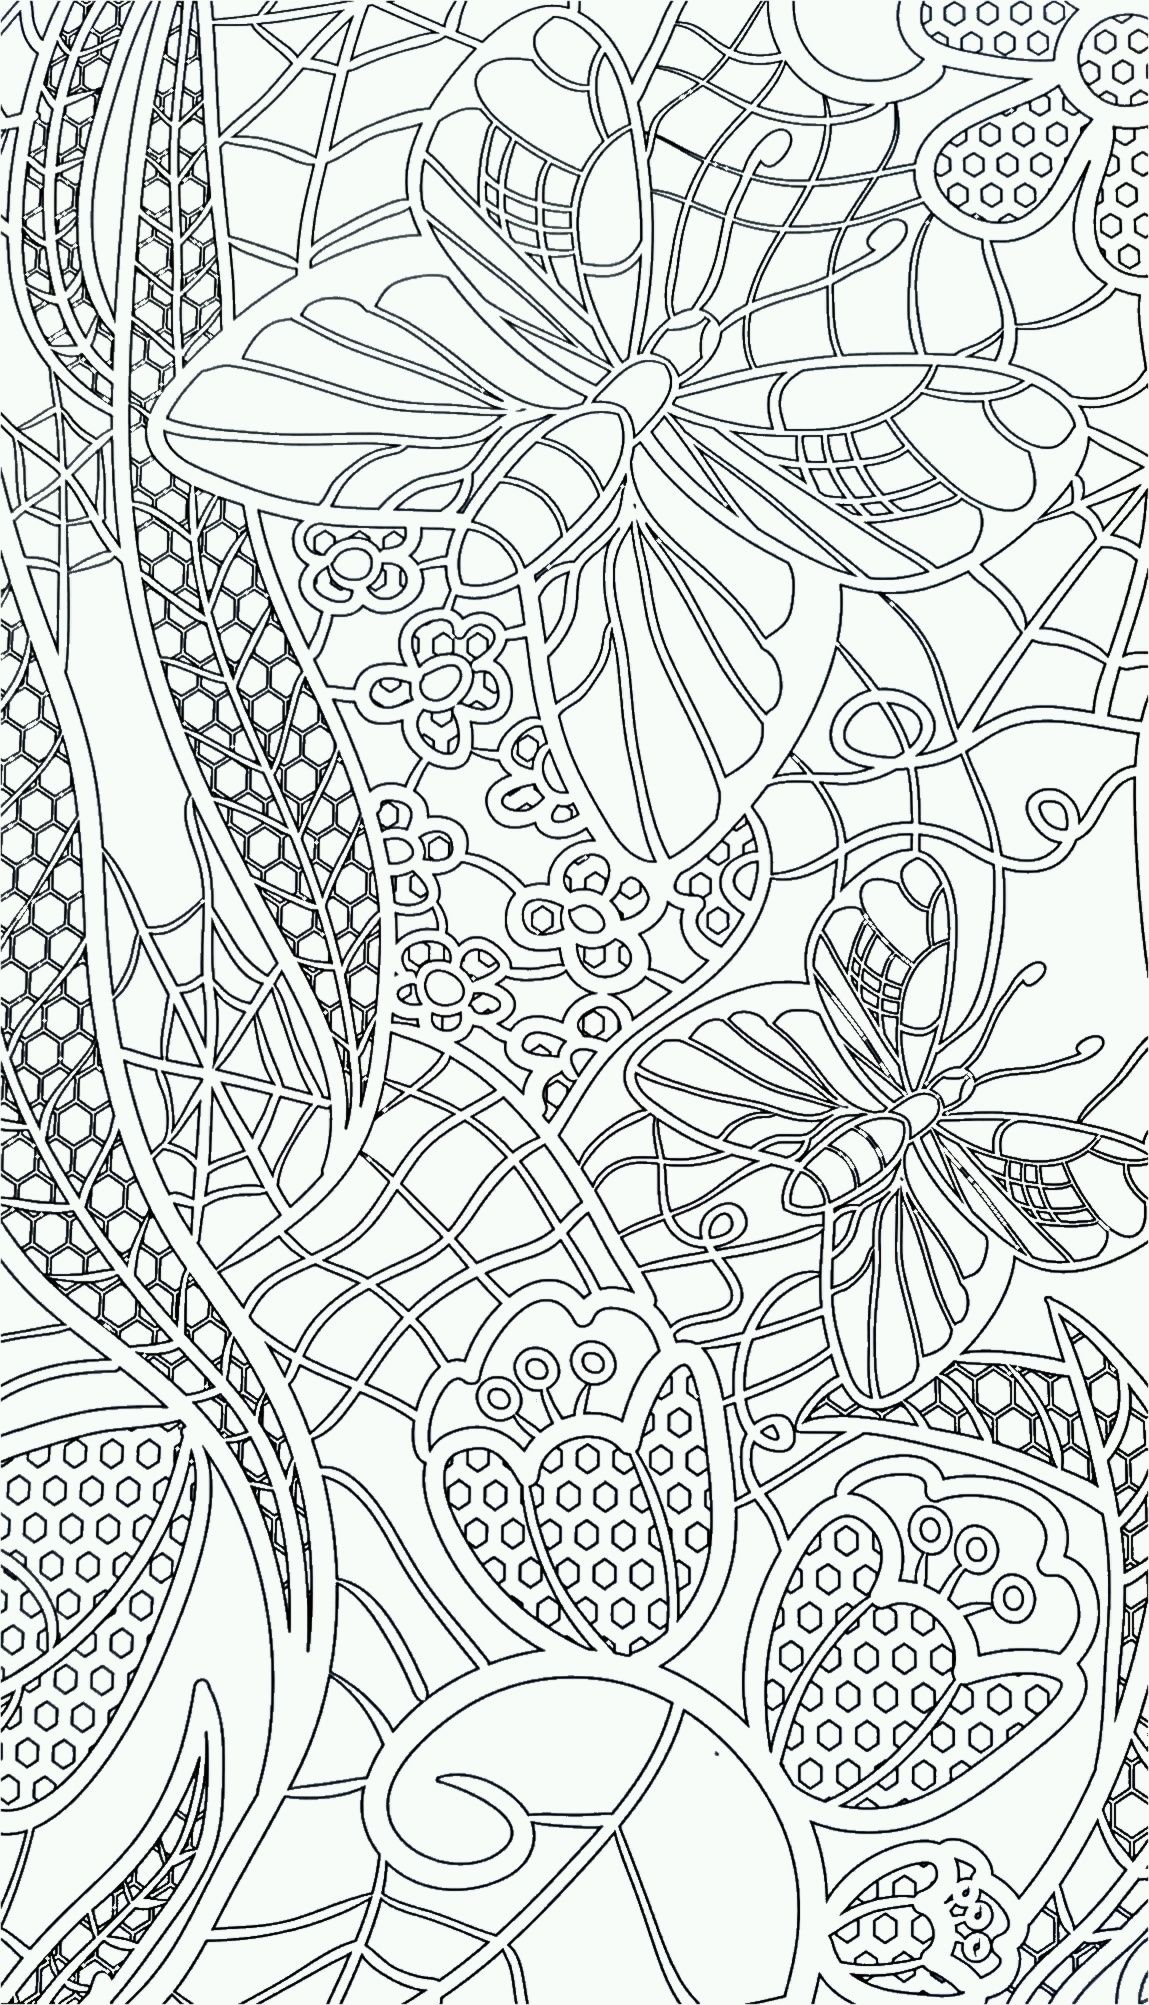 1000 ideas about abstract coloring pages on pinterest for Adult abstract coloring pages